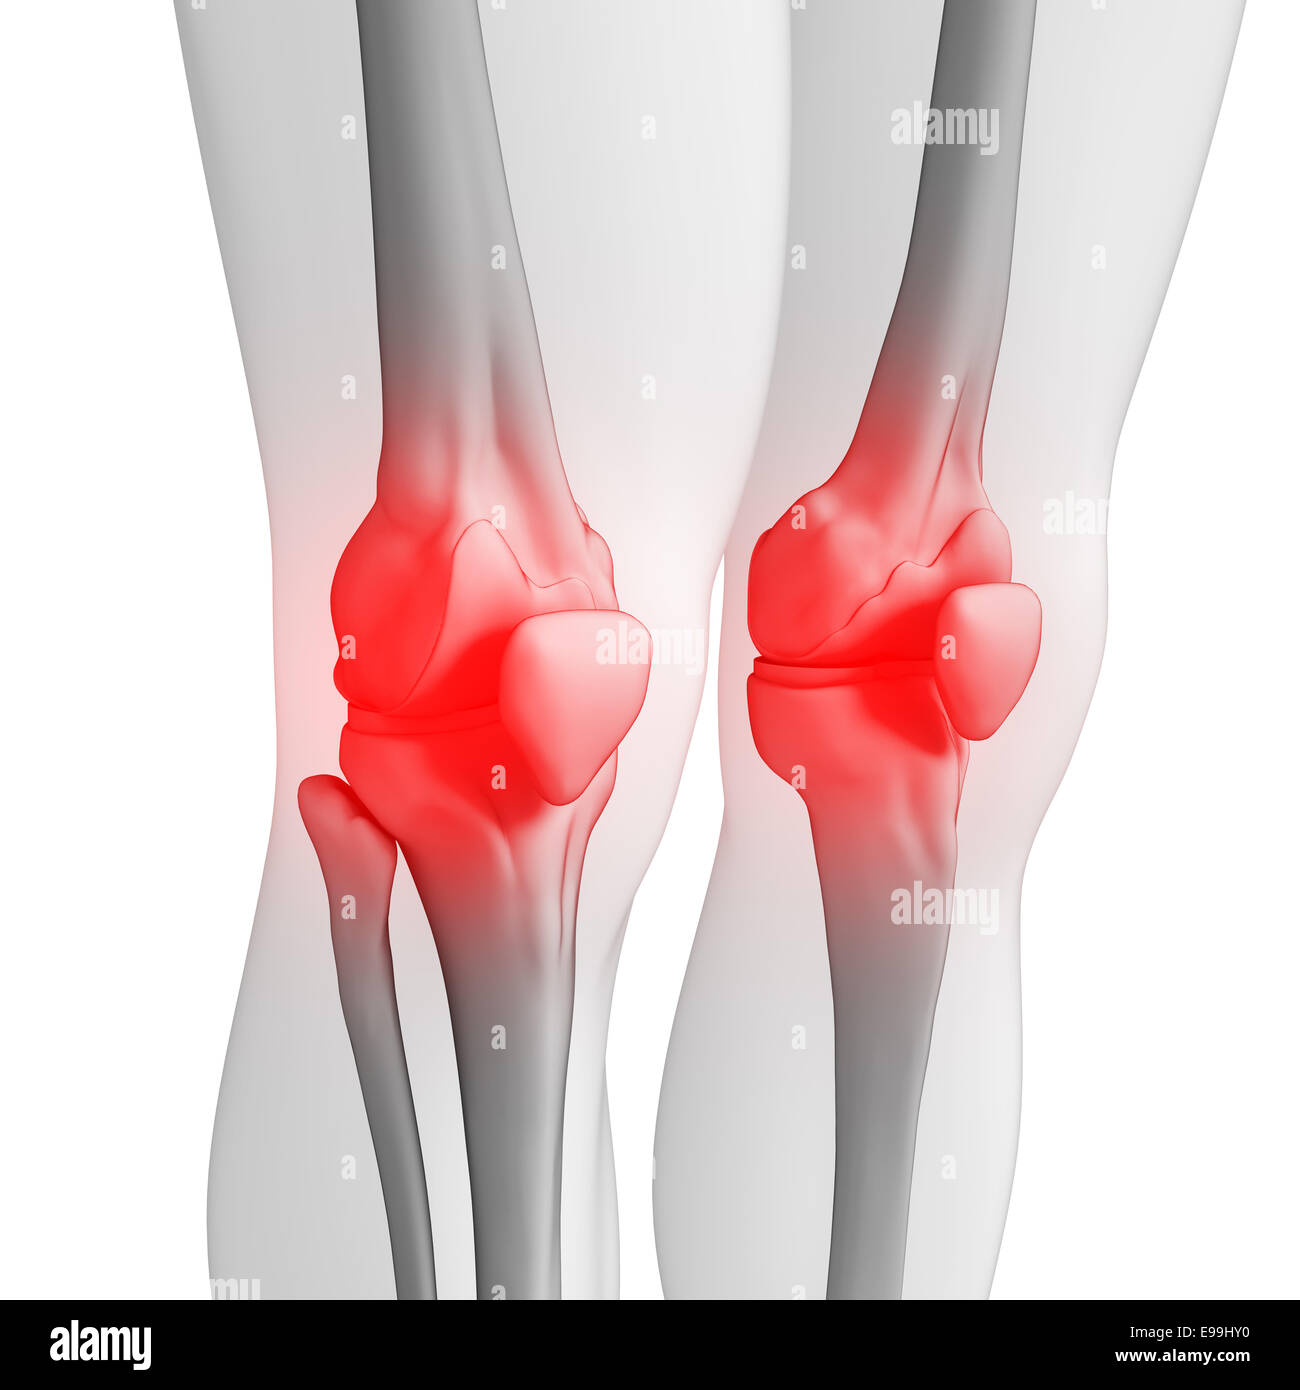 Illustration of human knee pain artwork Stock Photo